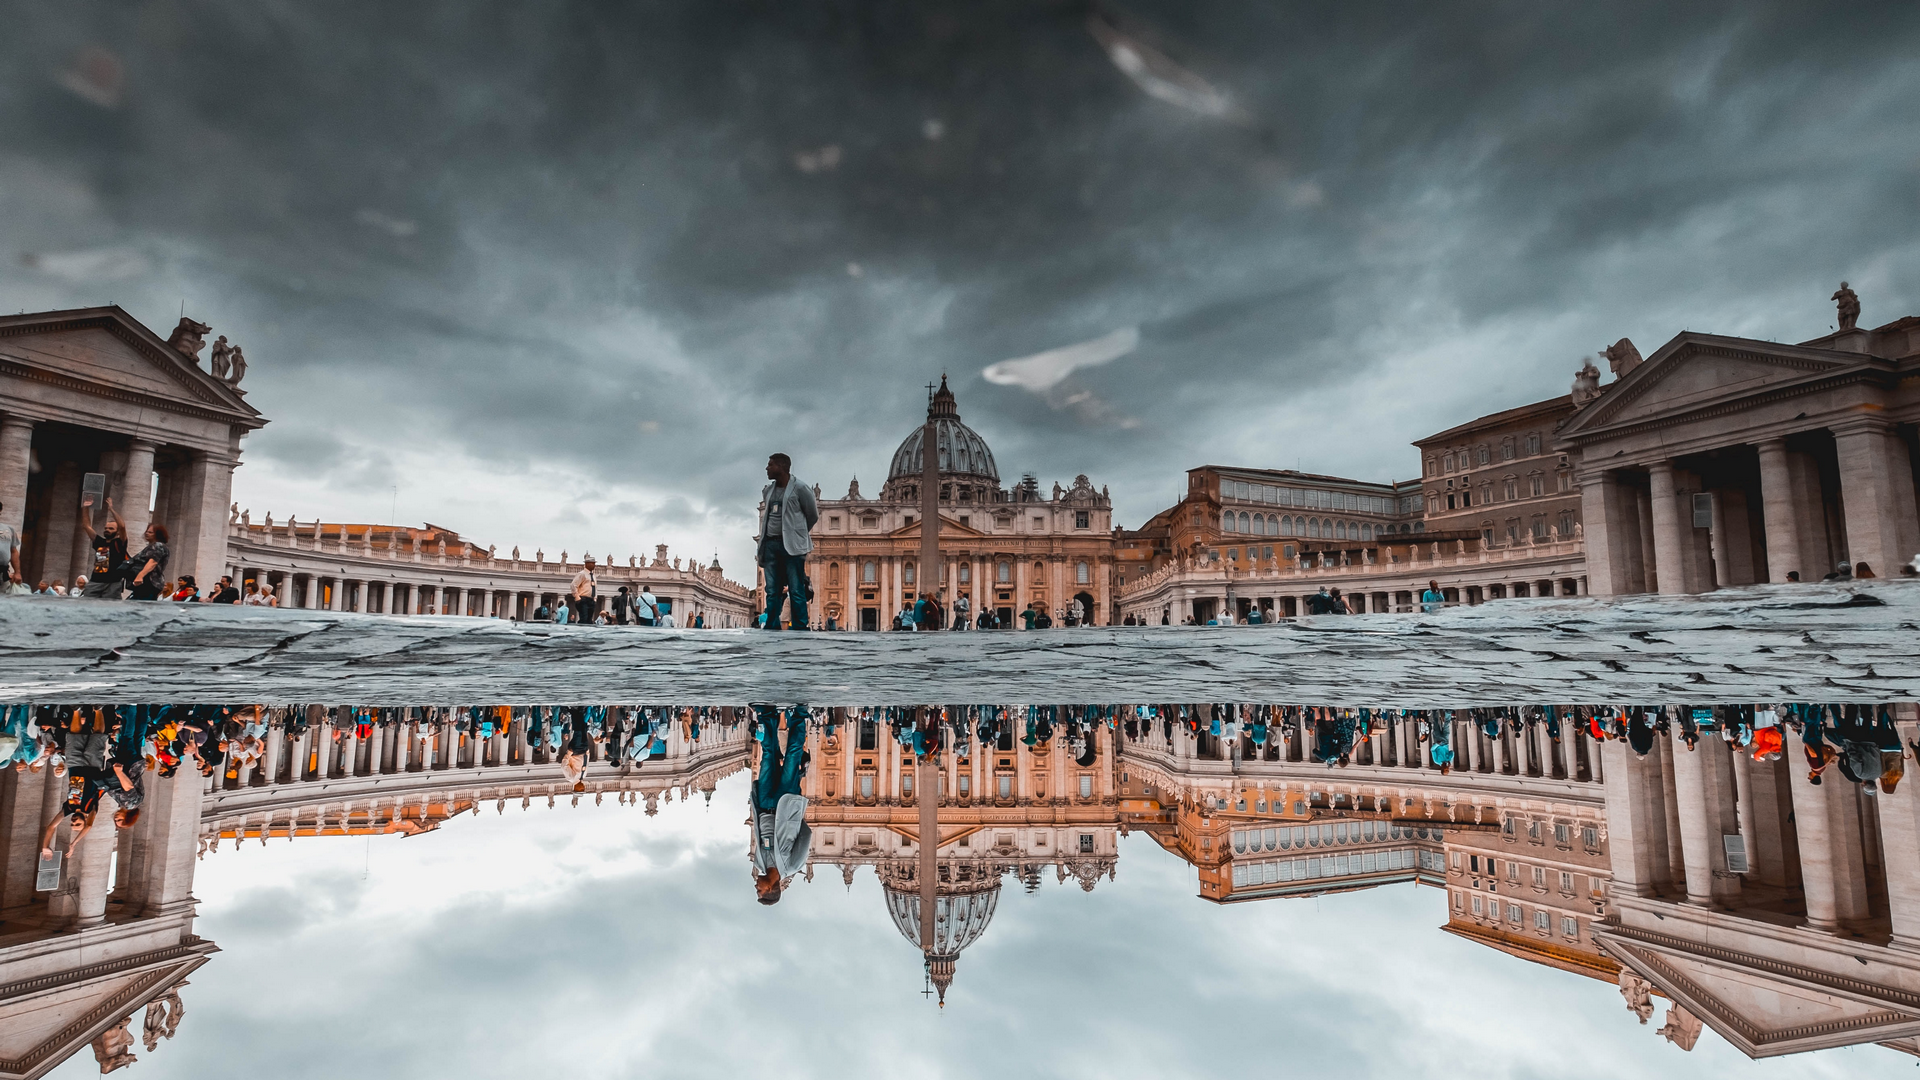 A view in The Vatican